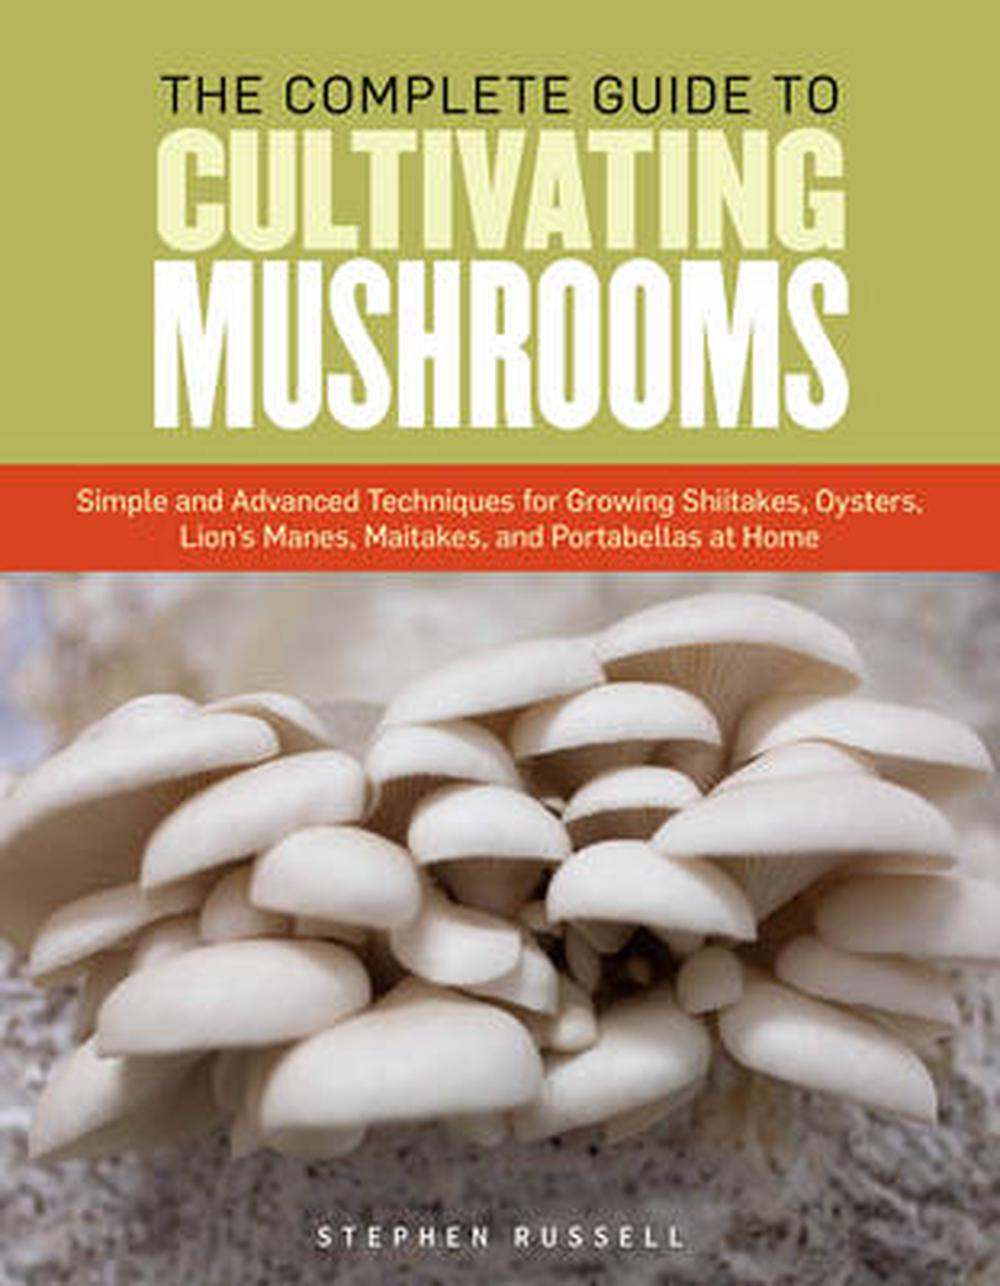 The Complete Guide to Cultivating Mushrooms: Simple and Advanced Techniques for Growing Shiitakes, Oysters, Lion's Manes, Maitakes, and Portabellas at